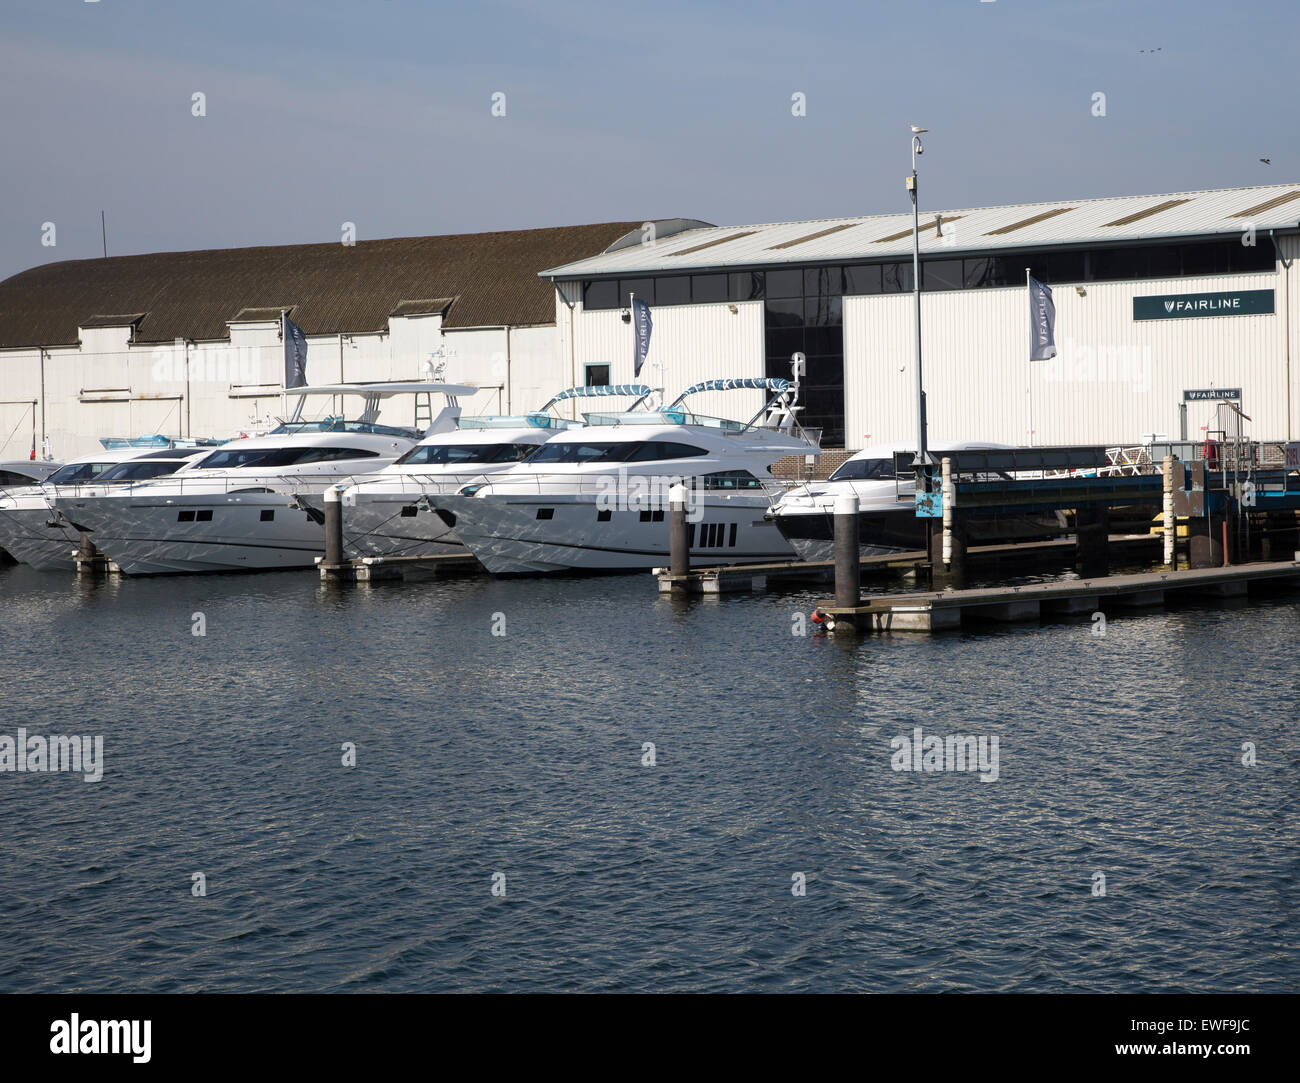 Fairline Luxury Motor Yachts, Ipswich, Suffolk, England, UK Stock Photo